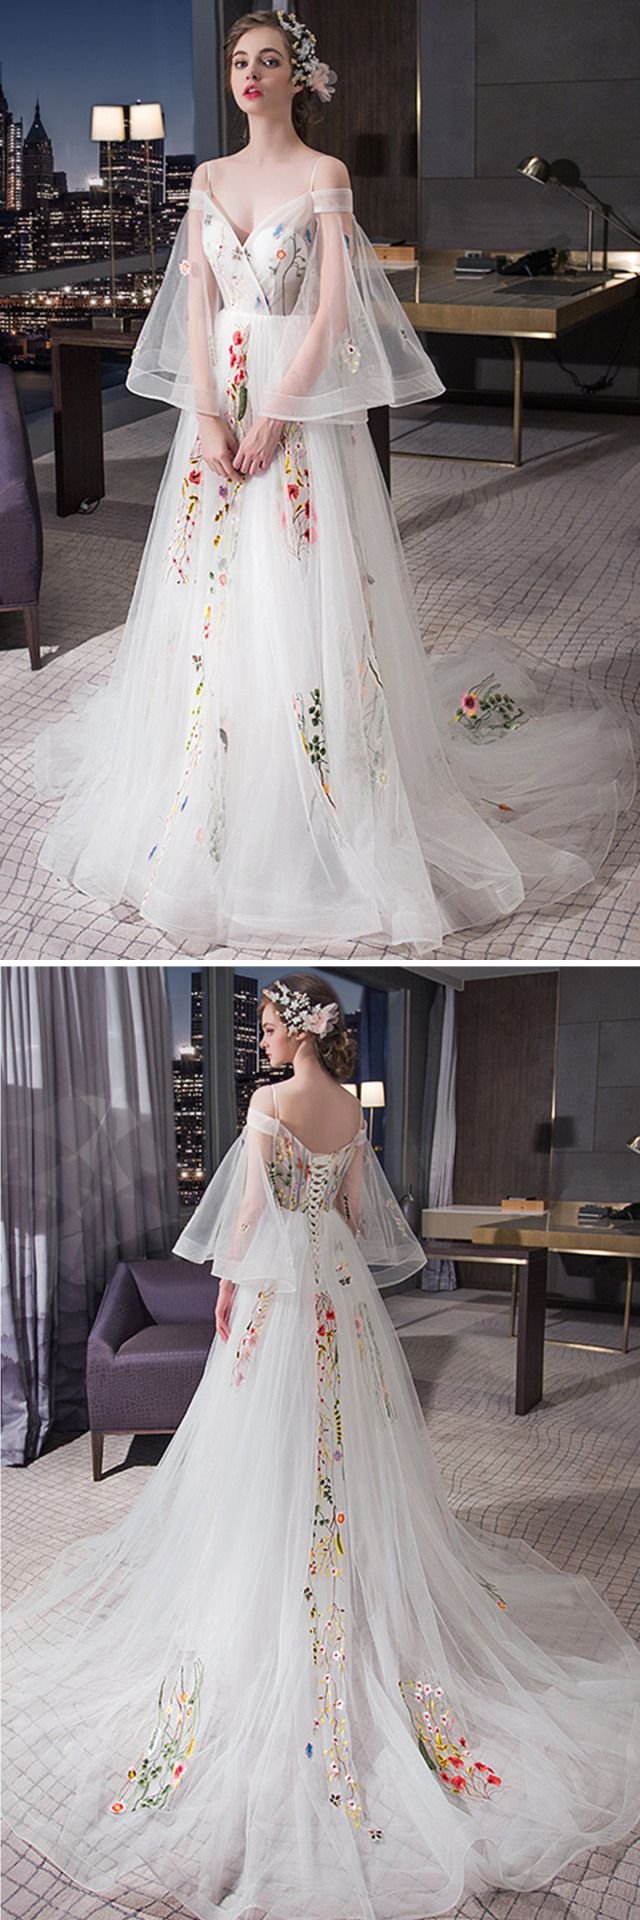 Beautiful white tulle off shoulder prom gown wedding dress dress